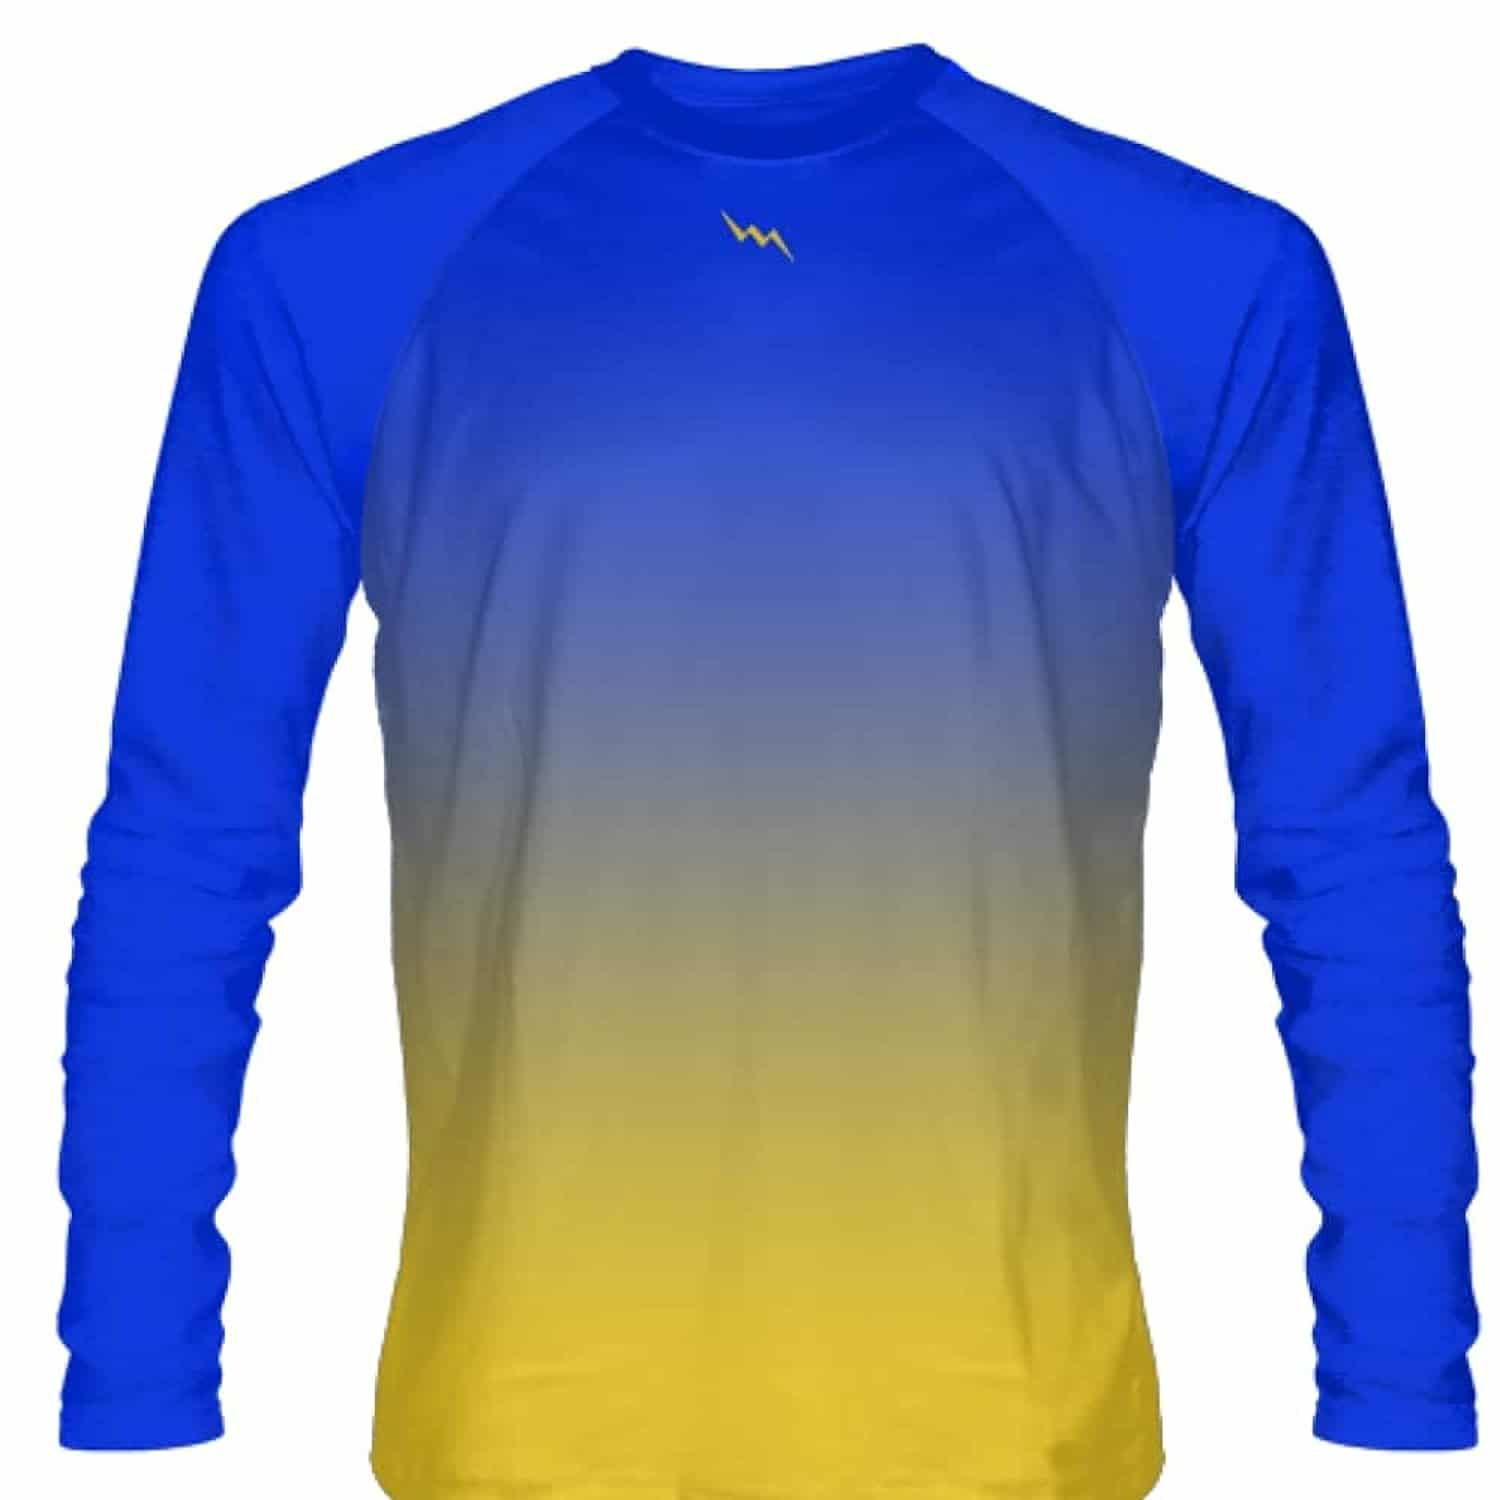 cb8a0a98dad Blue-Gold-Fade-Ombre-Long-Sleeve-Shirts-Basketball-Long-Sleeve-Shirt -Adult-Youth-Blue-Gold-Basketball-Shirts-Blue-B078869MWC.jpg